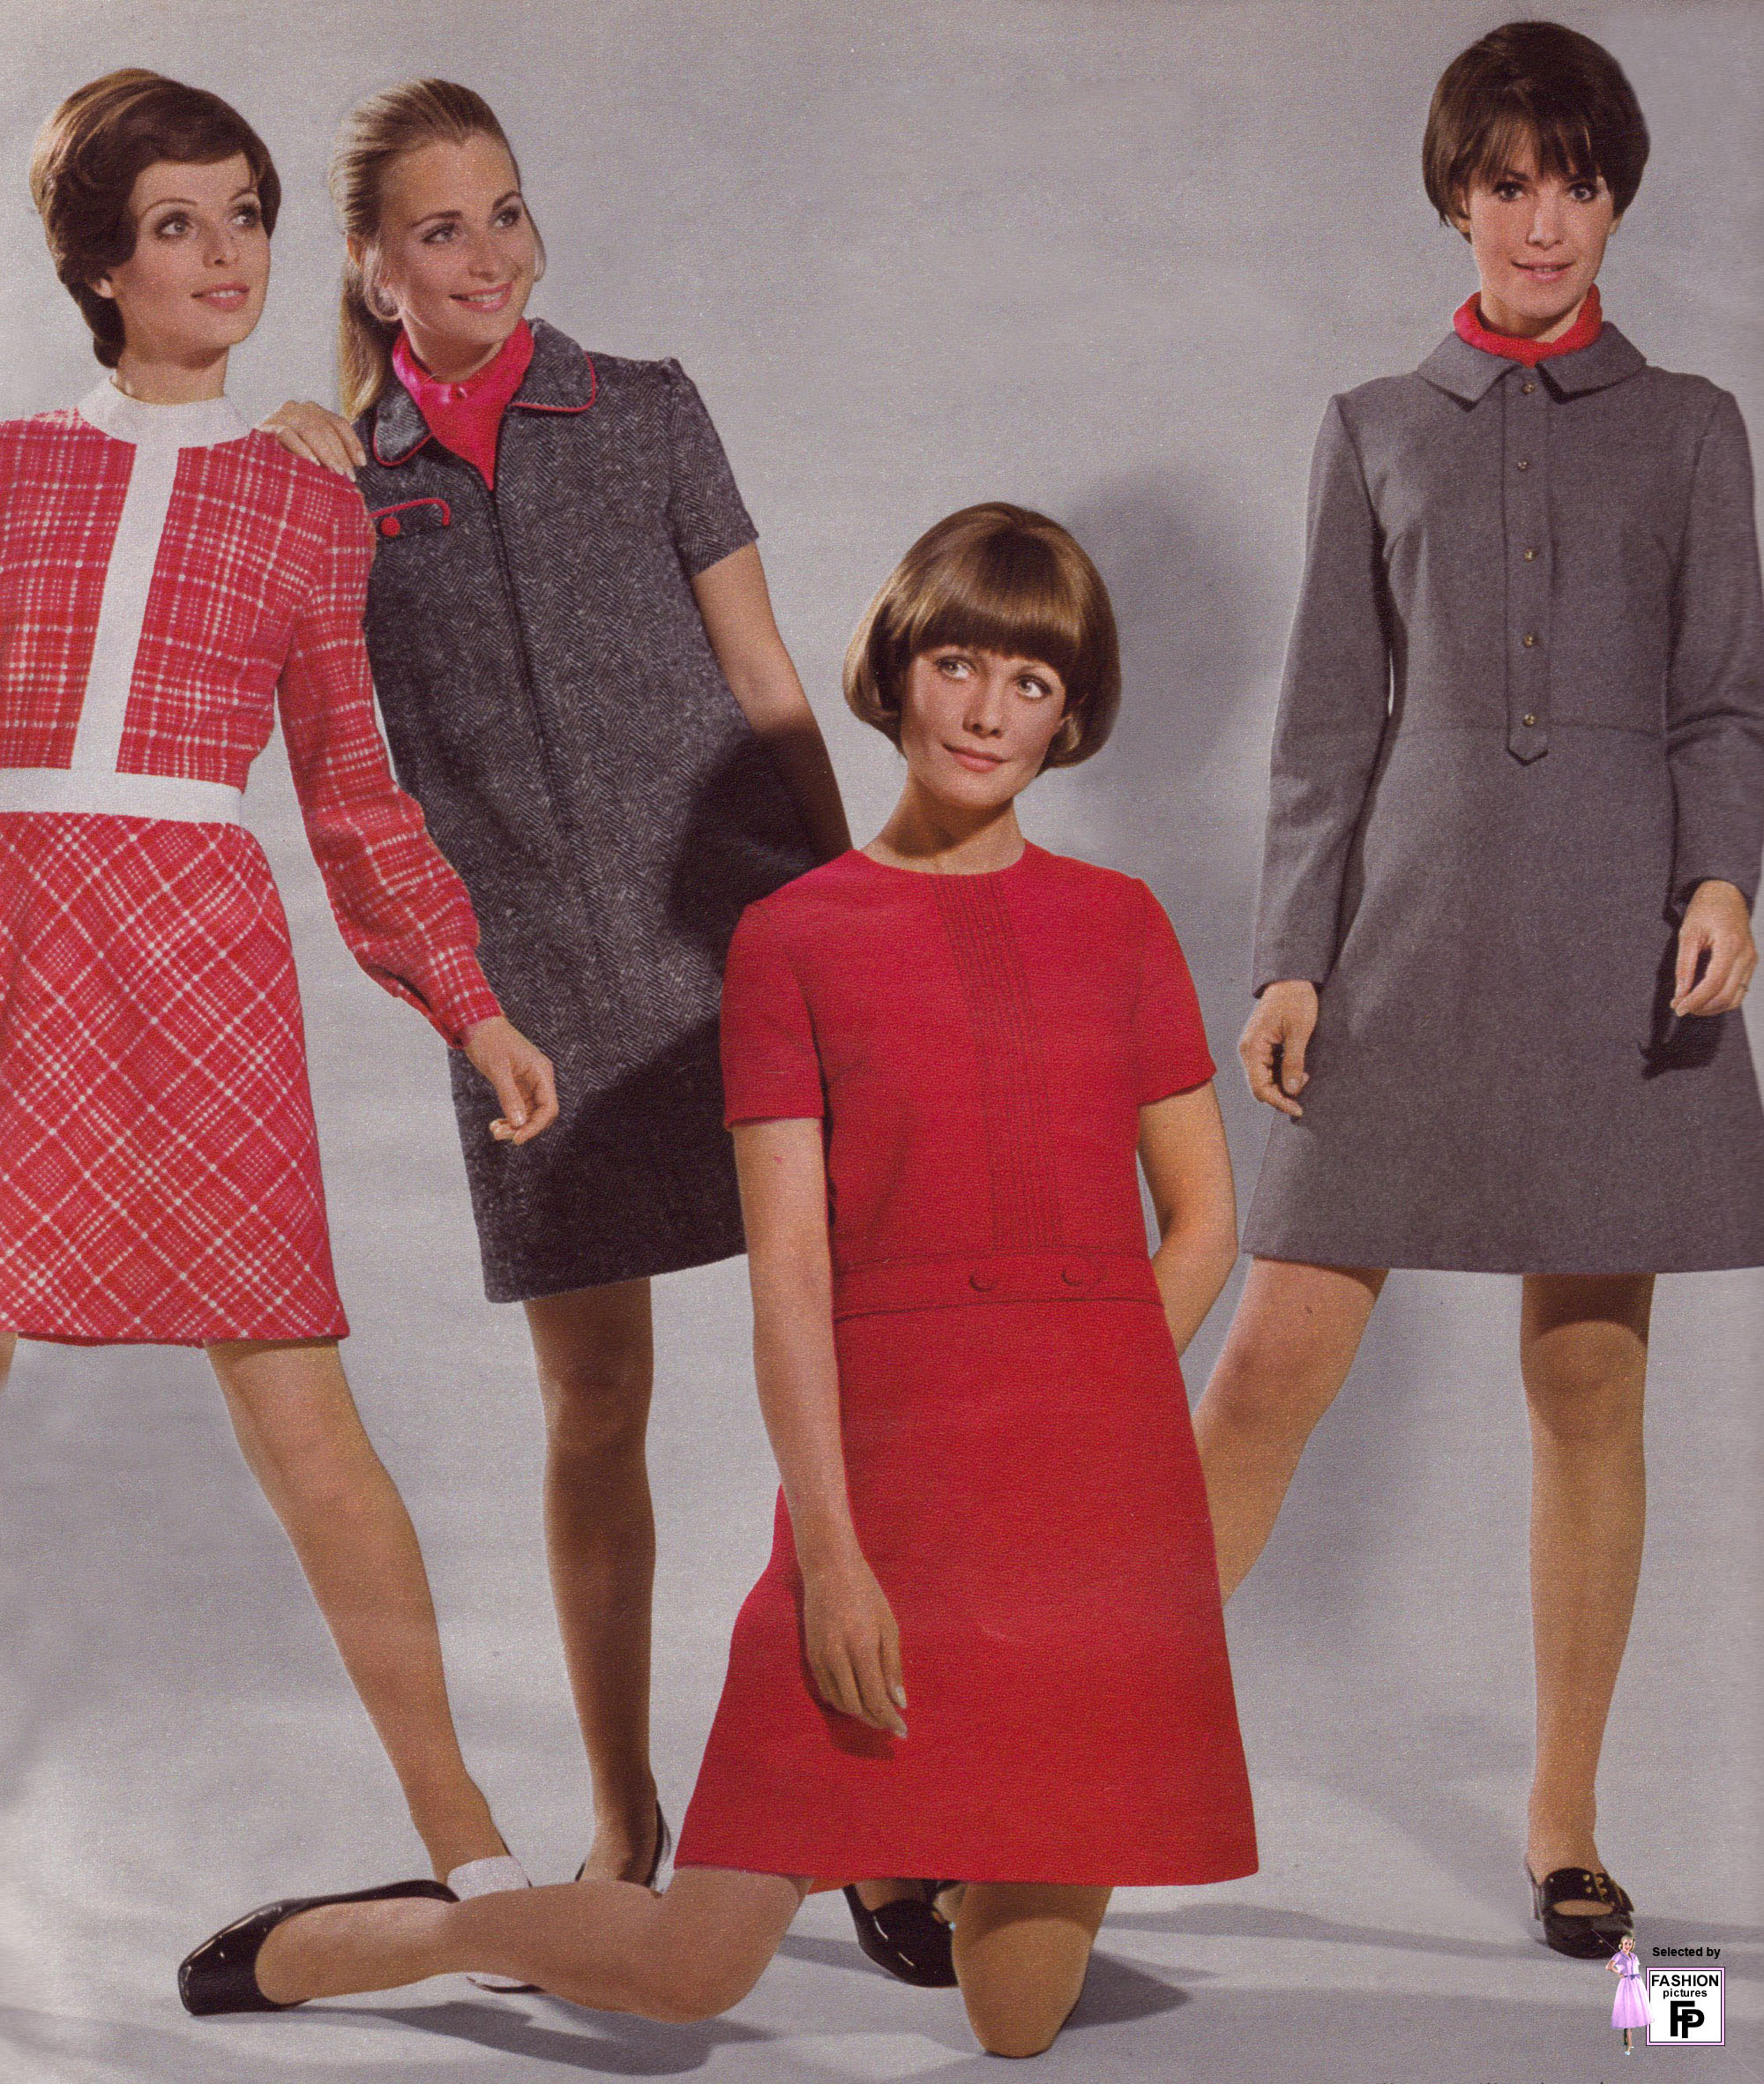 Retro fashion pictures from the 1950s 1960s 1970s 1980s Fashion pictures from the 1950s